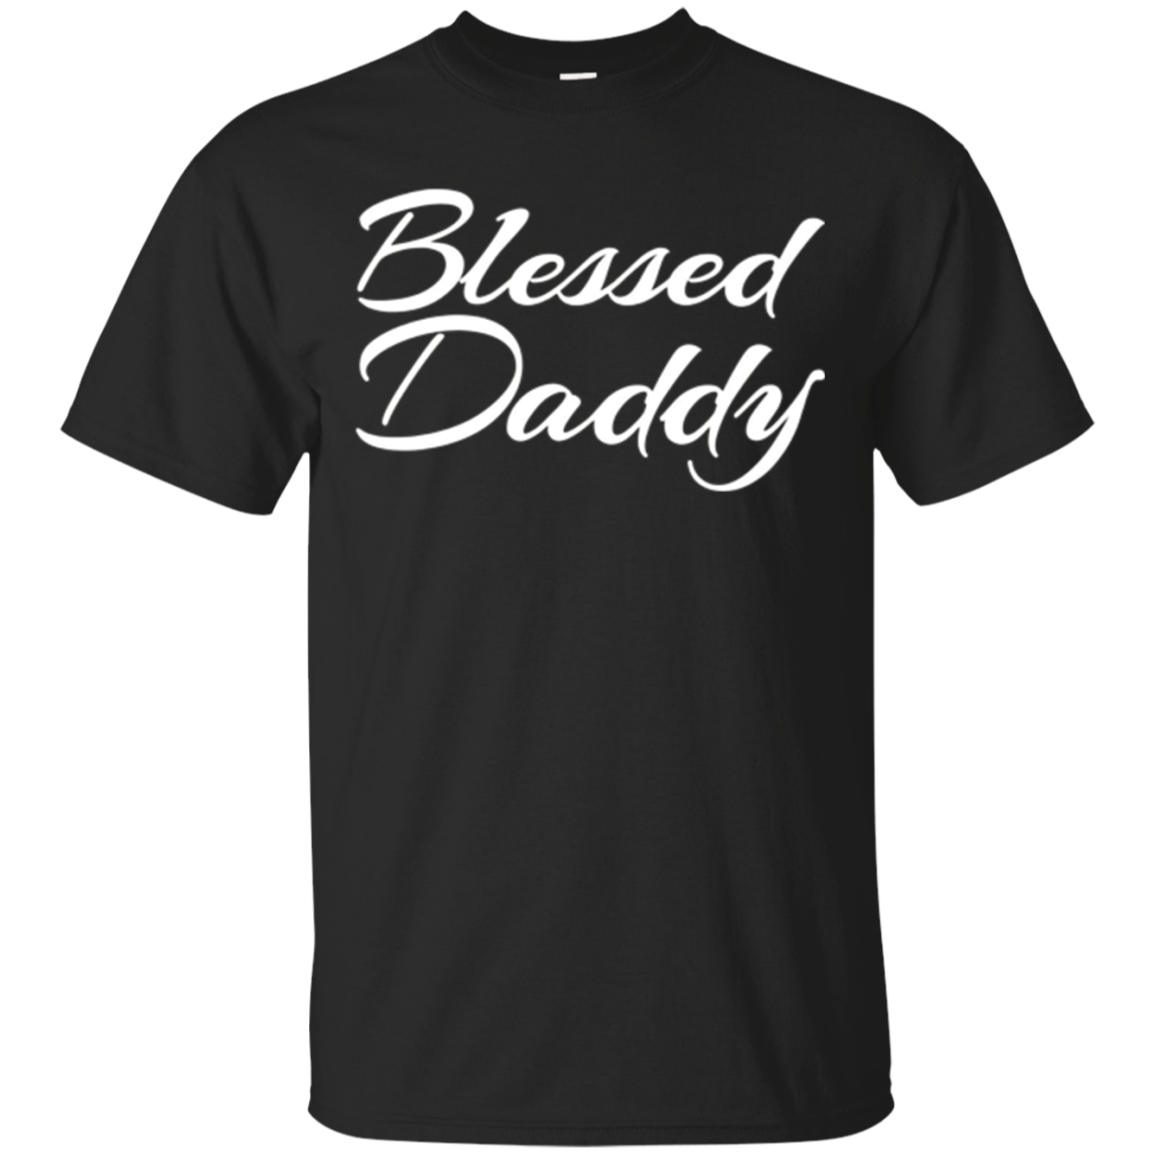 Mens Blessed Daddy Shirt